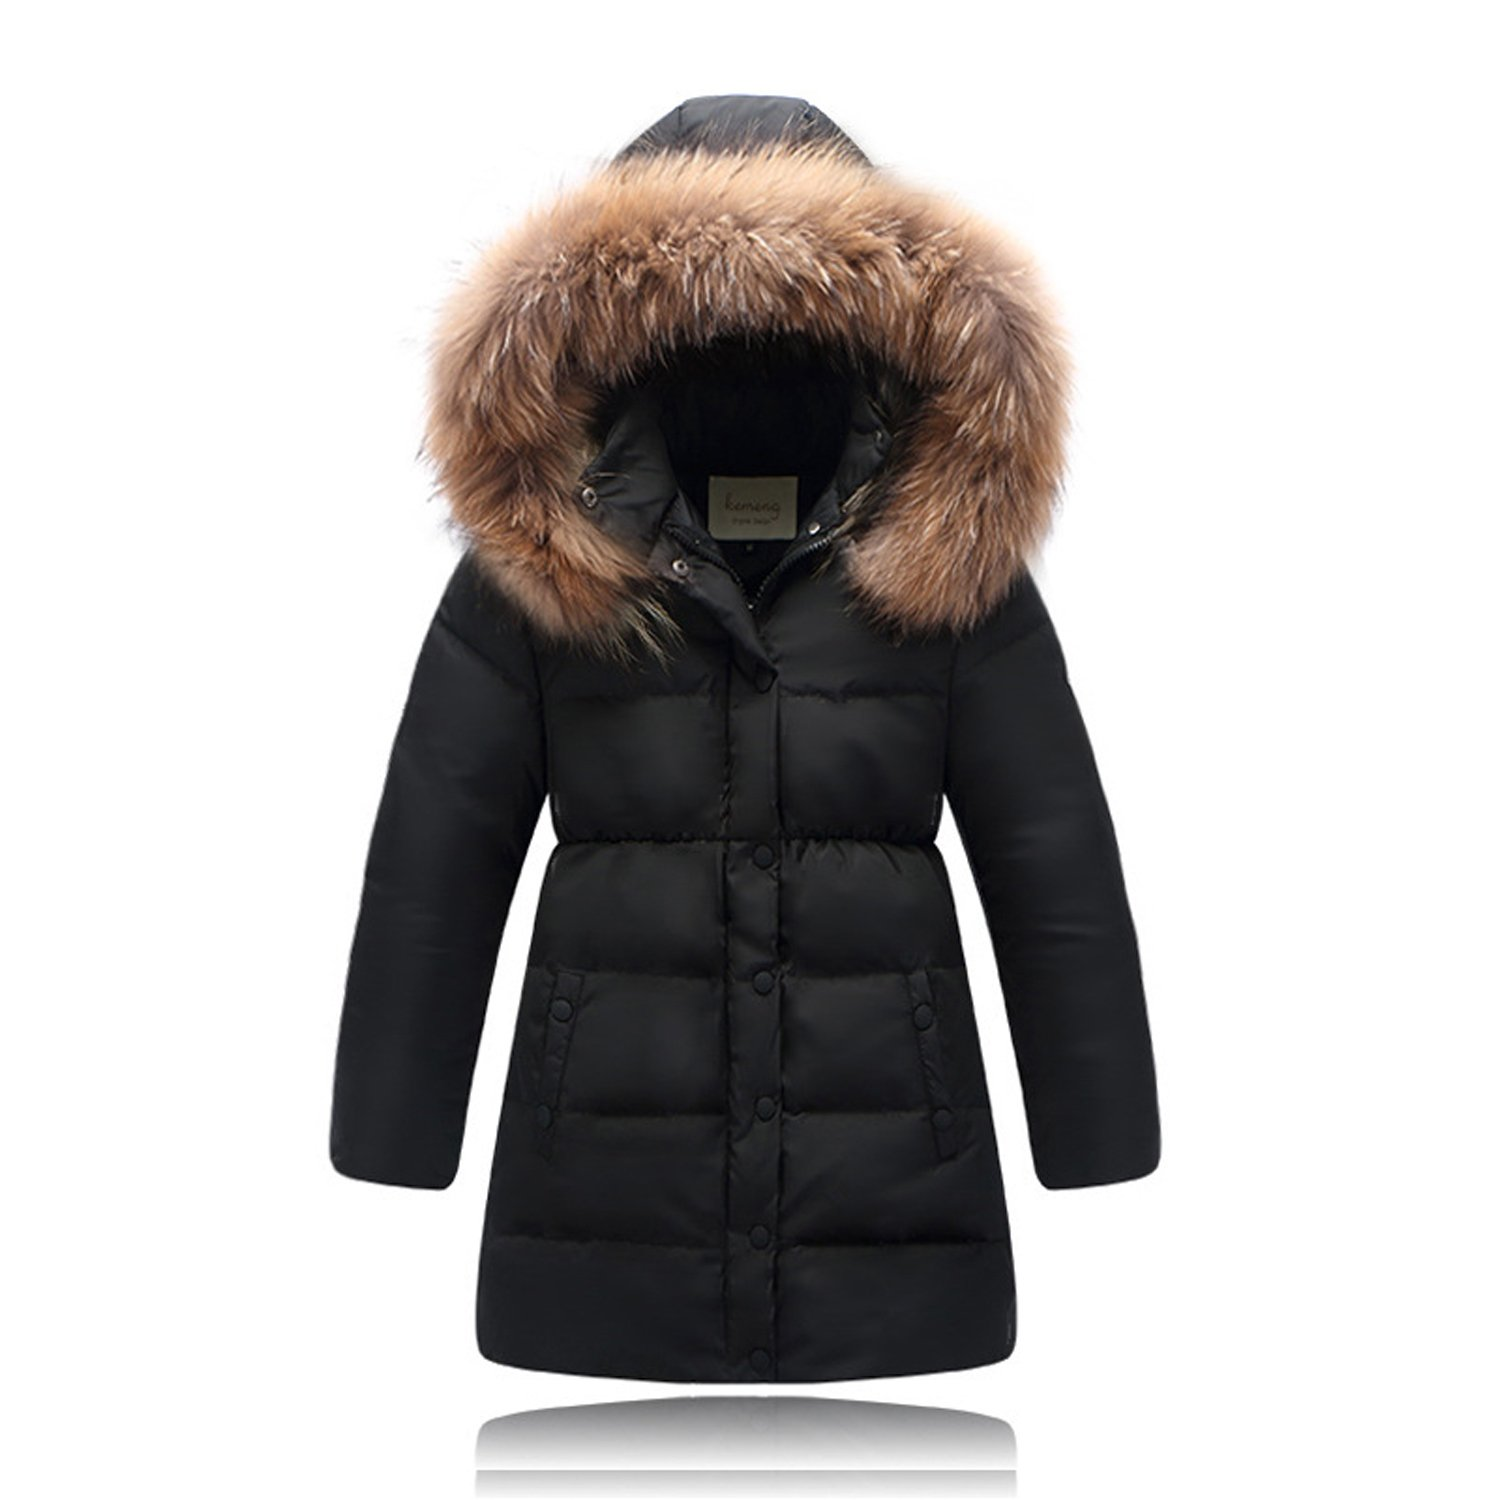 Seeduck Big Girls' Winter Parka Down Coat Puffer Jacket Padded Overcoat with Fur Hood (3/4T=110CM=43.3 Inch, Black)